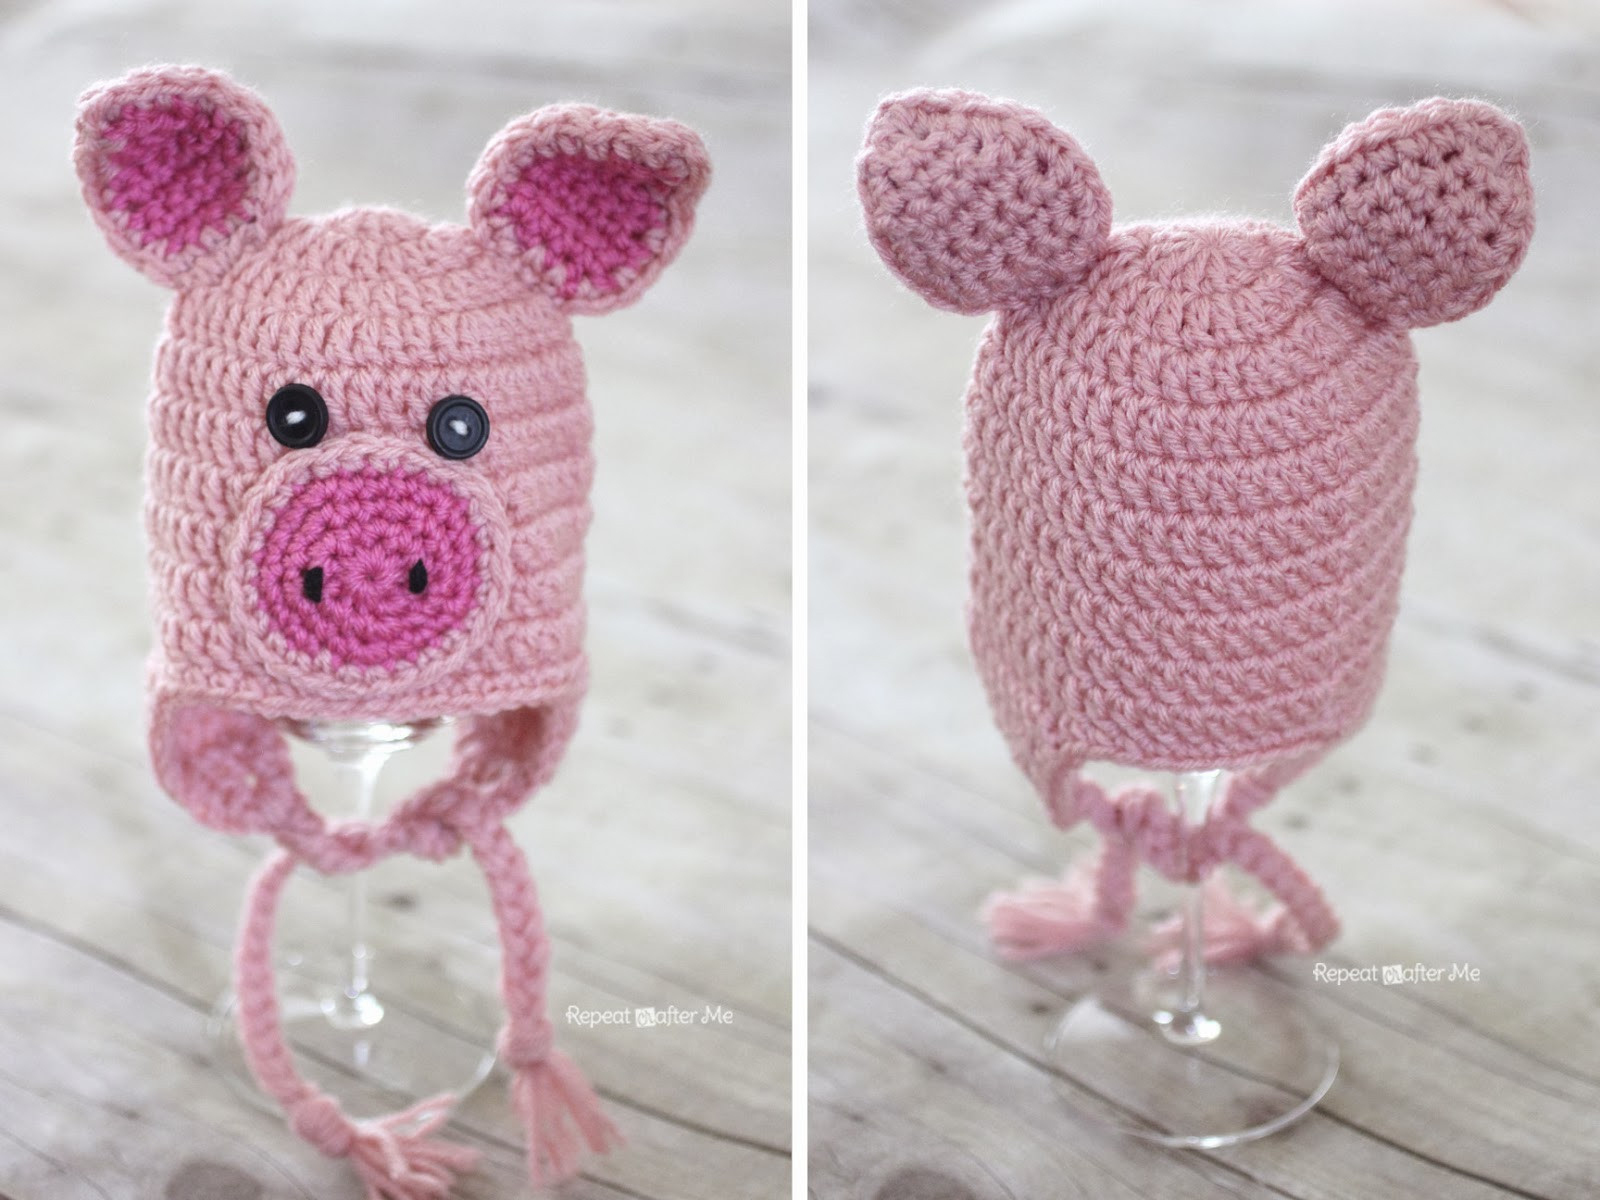 Crochet Pig Pattern Fresh Crochet Pig Hat Pattern Repeat Crafter Me Of Adorable 49 Models Crochet Pig Pattern